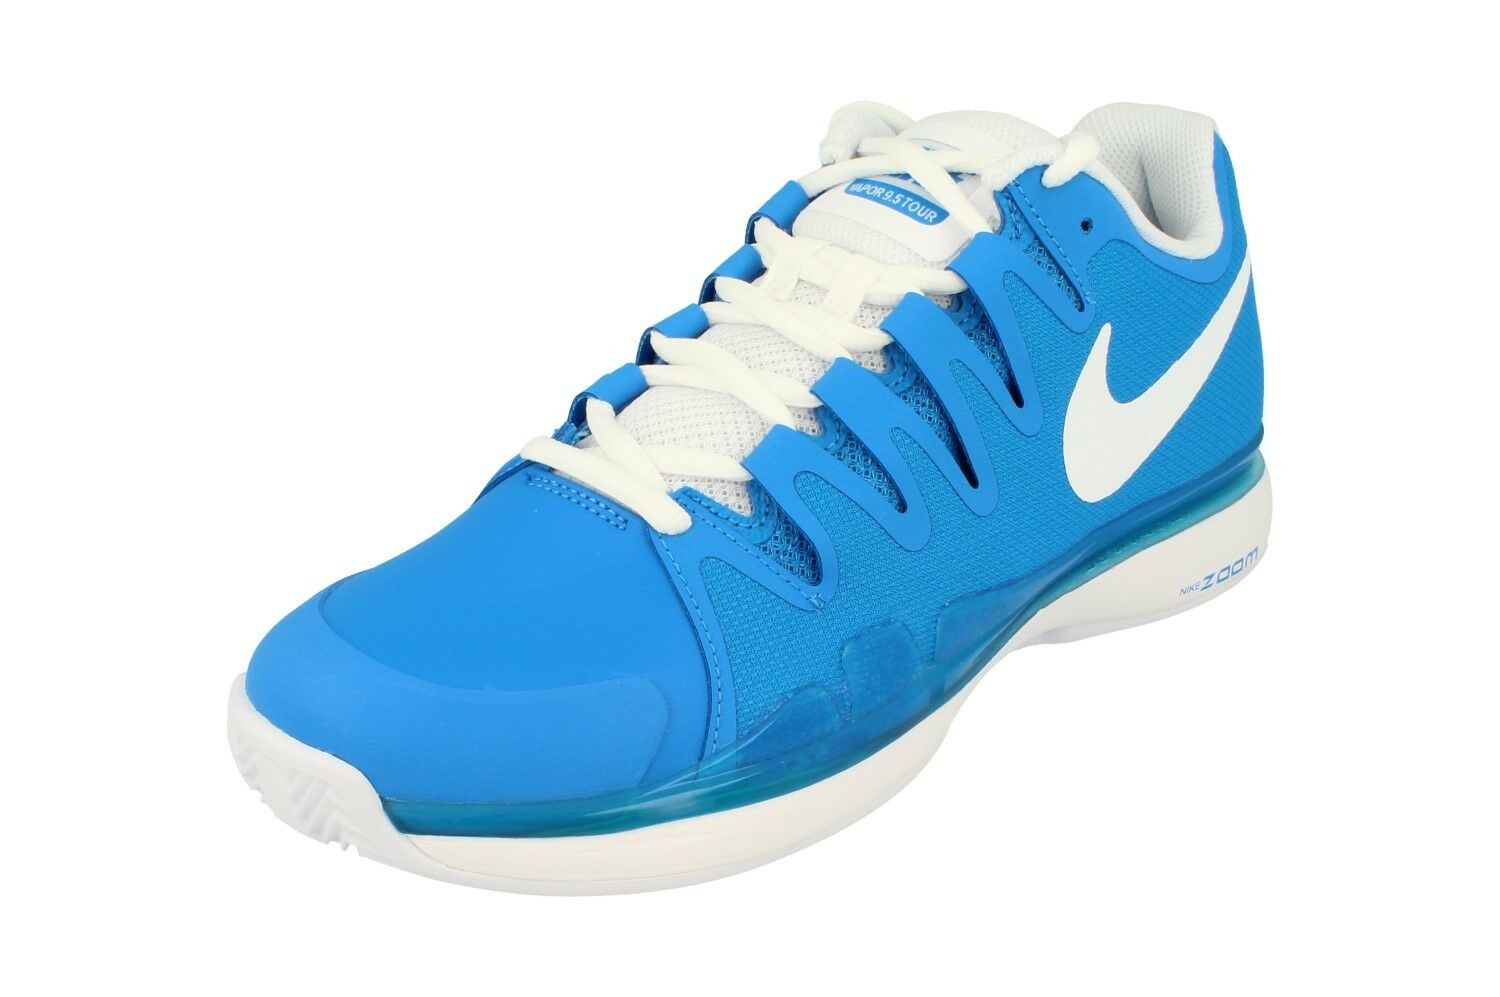 Nike Zoom Vapor 9.5 Tour Clay Mens Tennis Shoes 631457 401 Sneakers Trainers